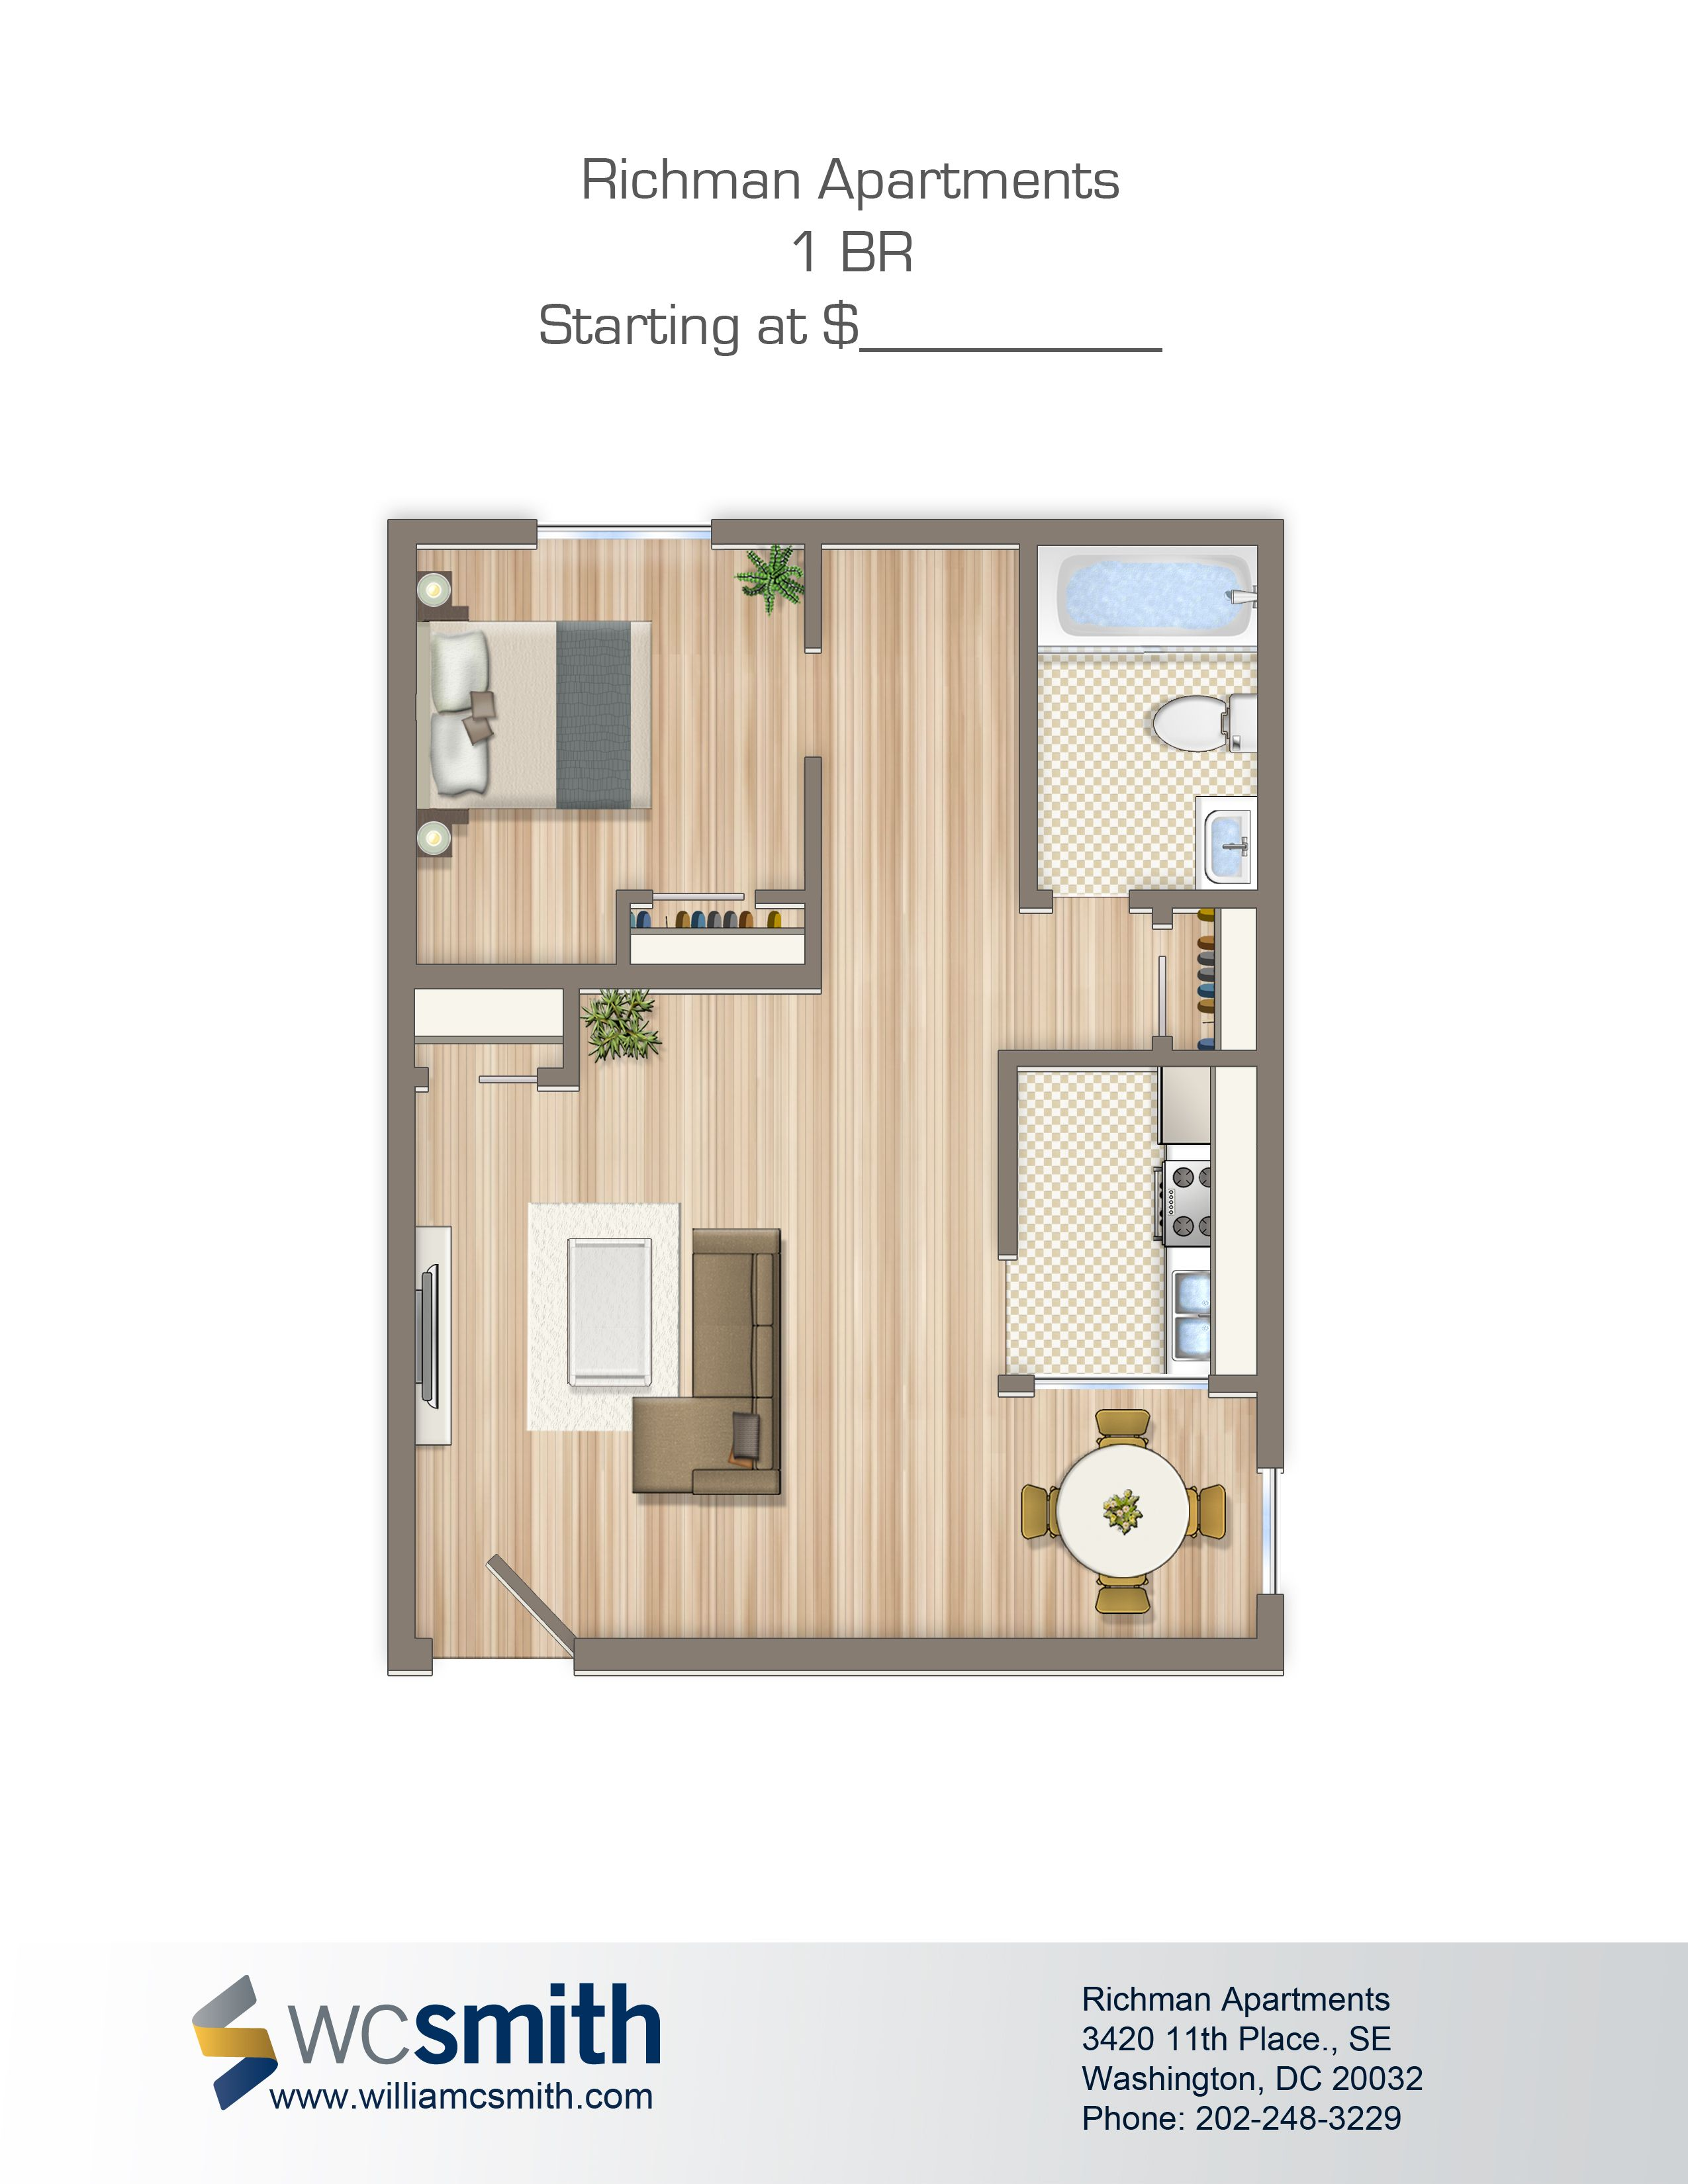 One Bedroom Floor Plan | Richman In Southeast Washington DC | WC Smith # Apartments |